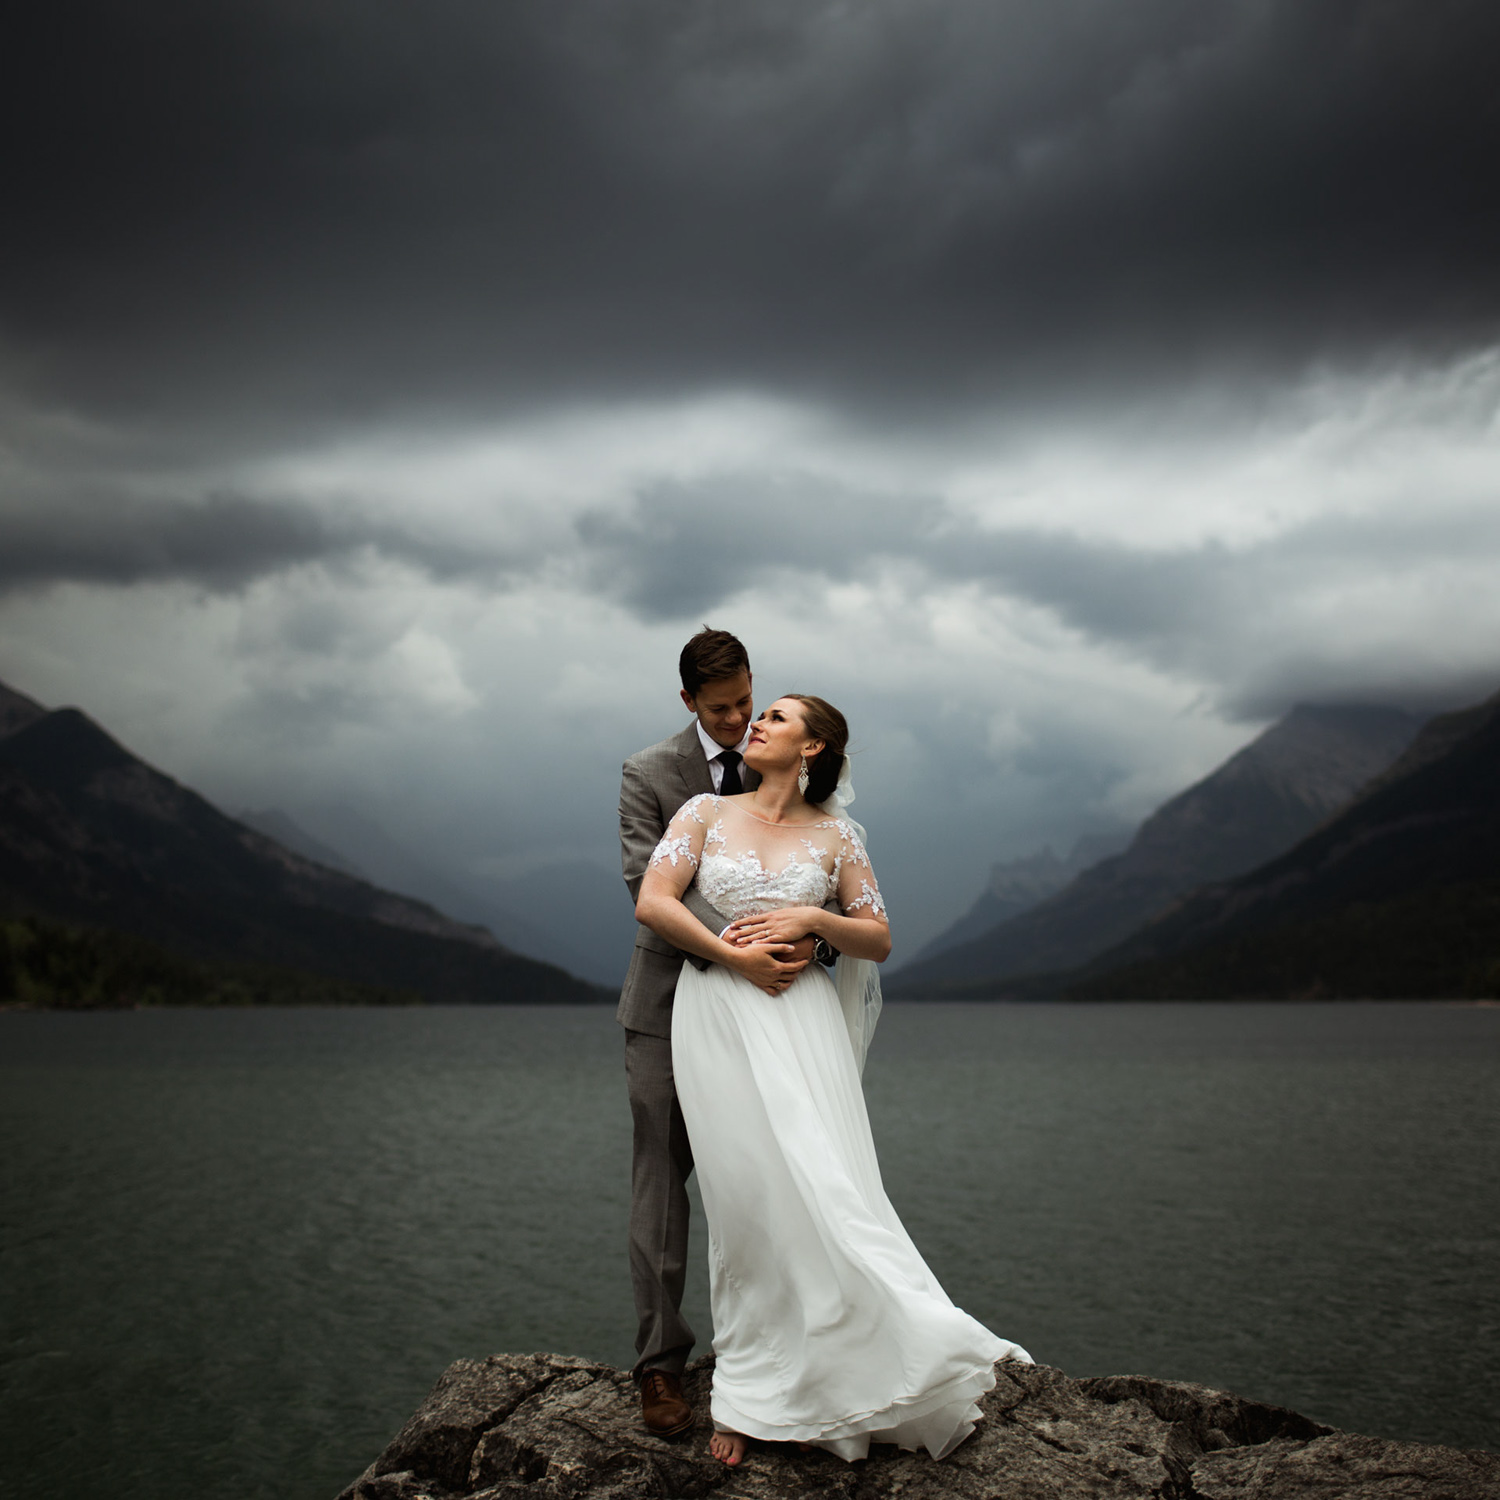 Willow and wolf wedding photography willow wolf for How to be a wedding photographer